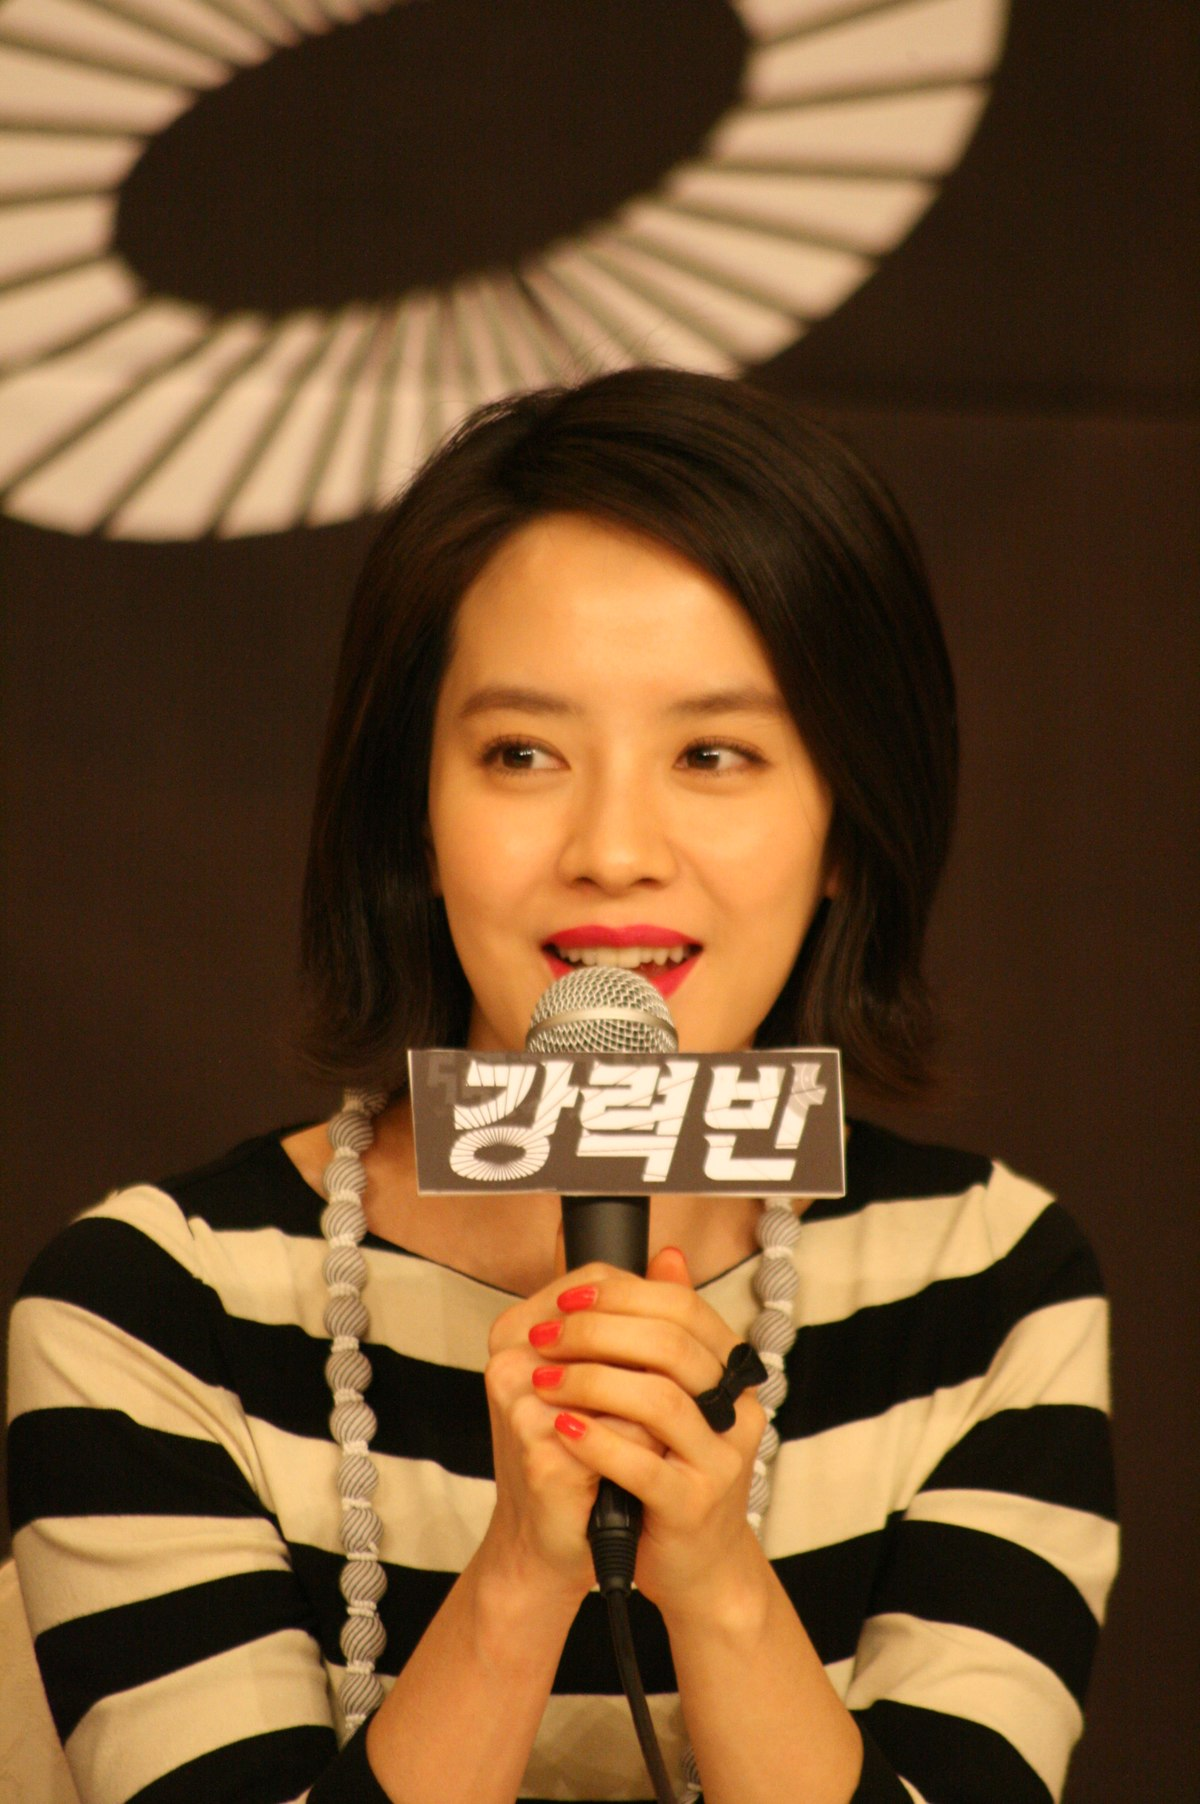 from Holden pictures of song ji hyo xlxx